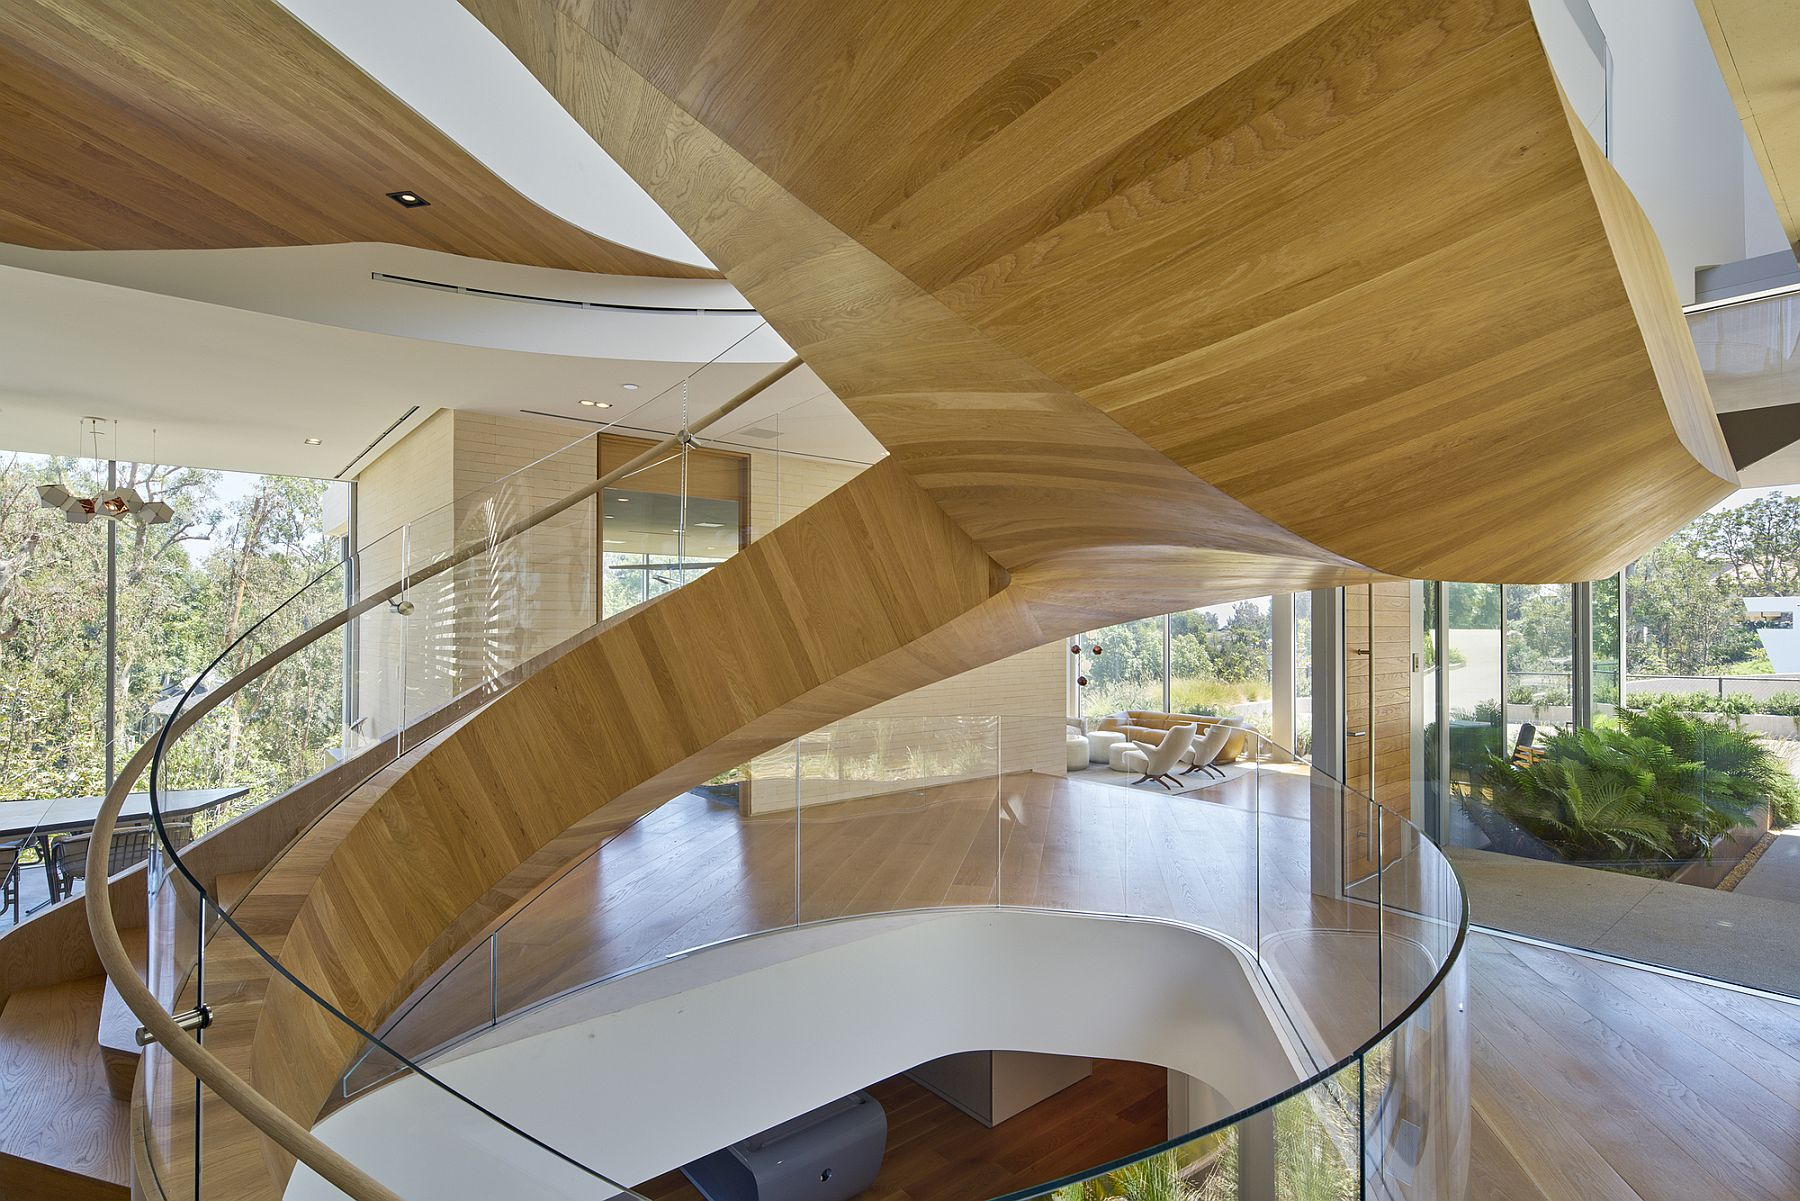 Amazing curvy staircase delineates spaces and adds extravagance to the interior